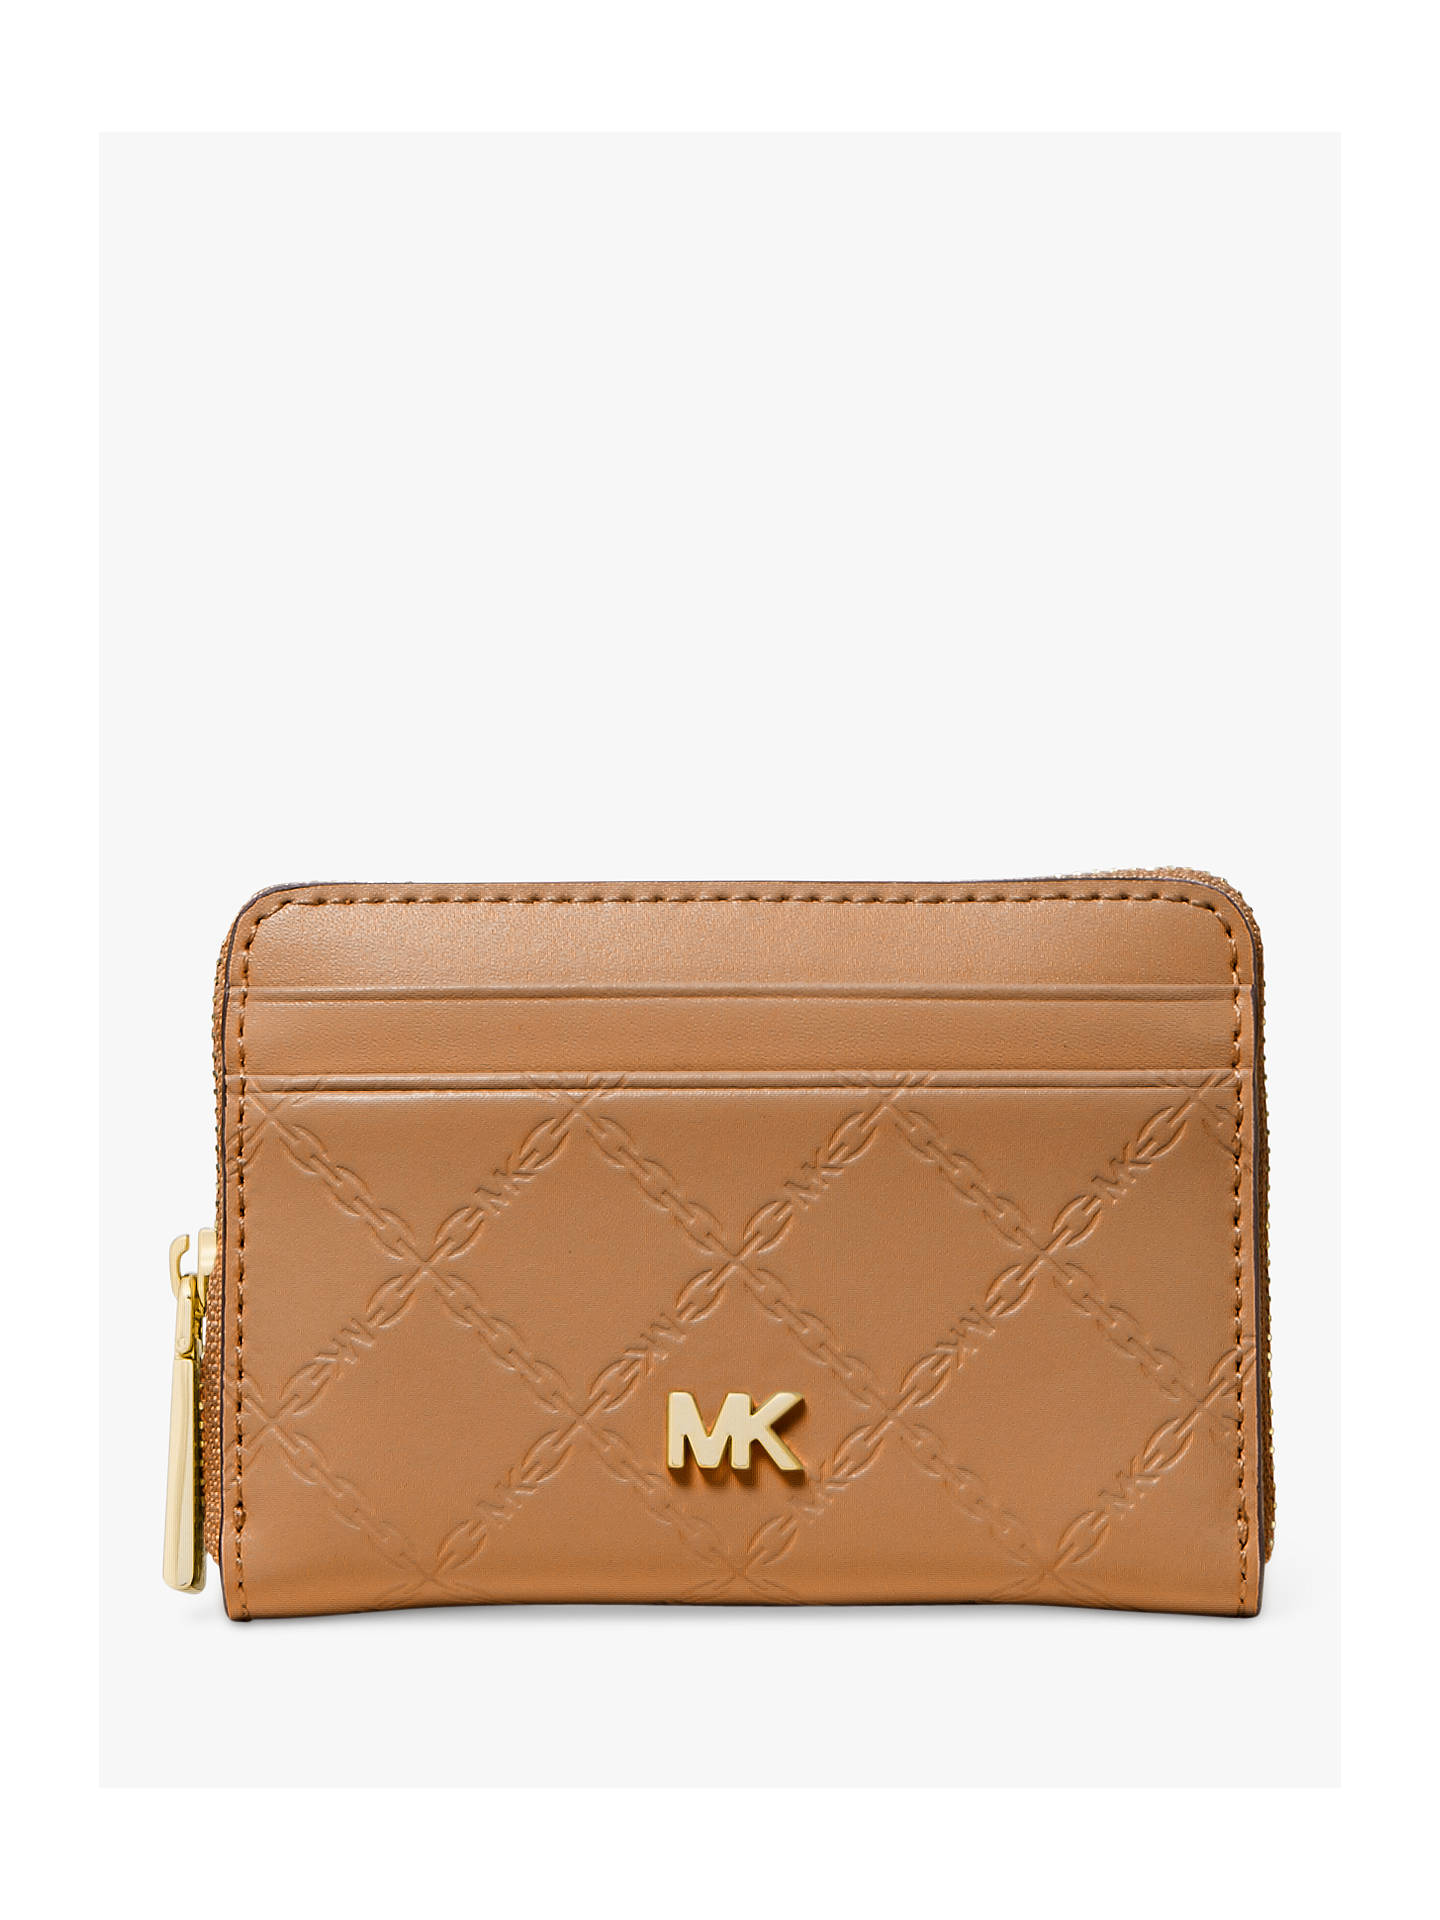 3a4c2becf88c Buy MICHAEL Michael Kors Money Pieces Leather Card and Coin Zip Purse, Acorn  Online at ...